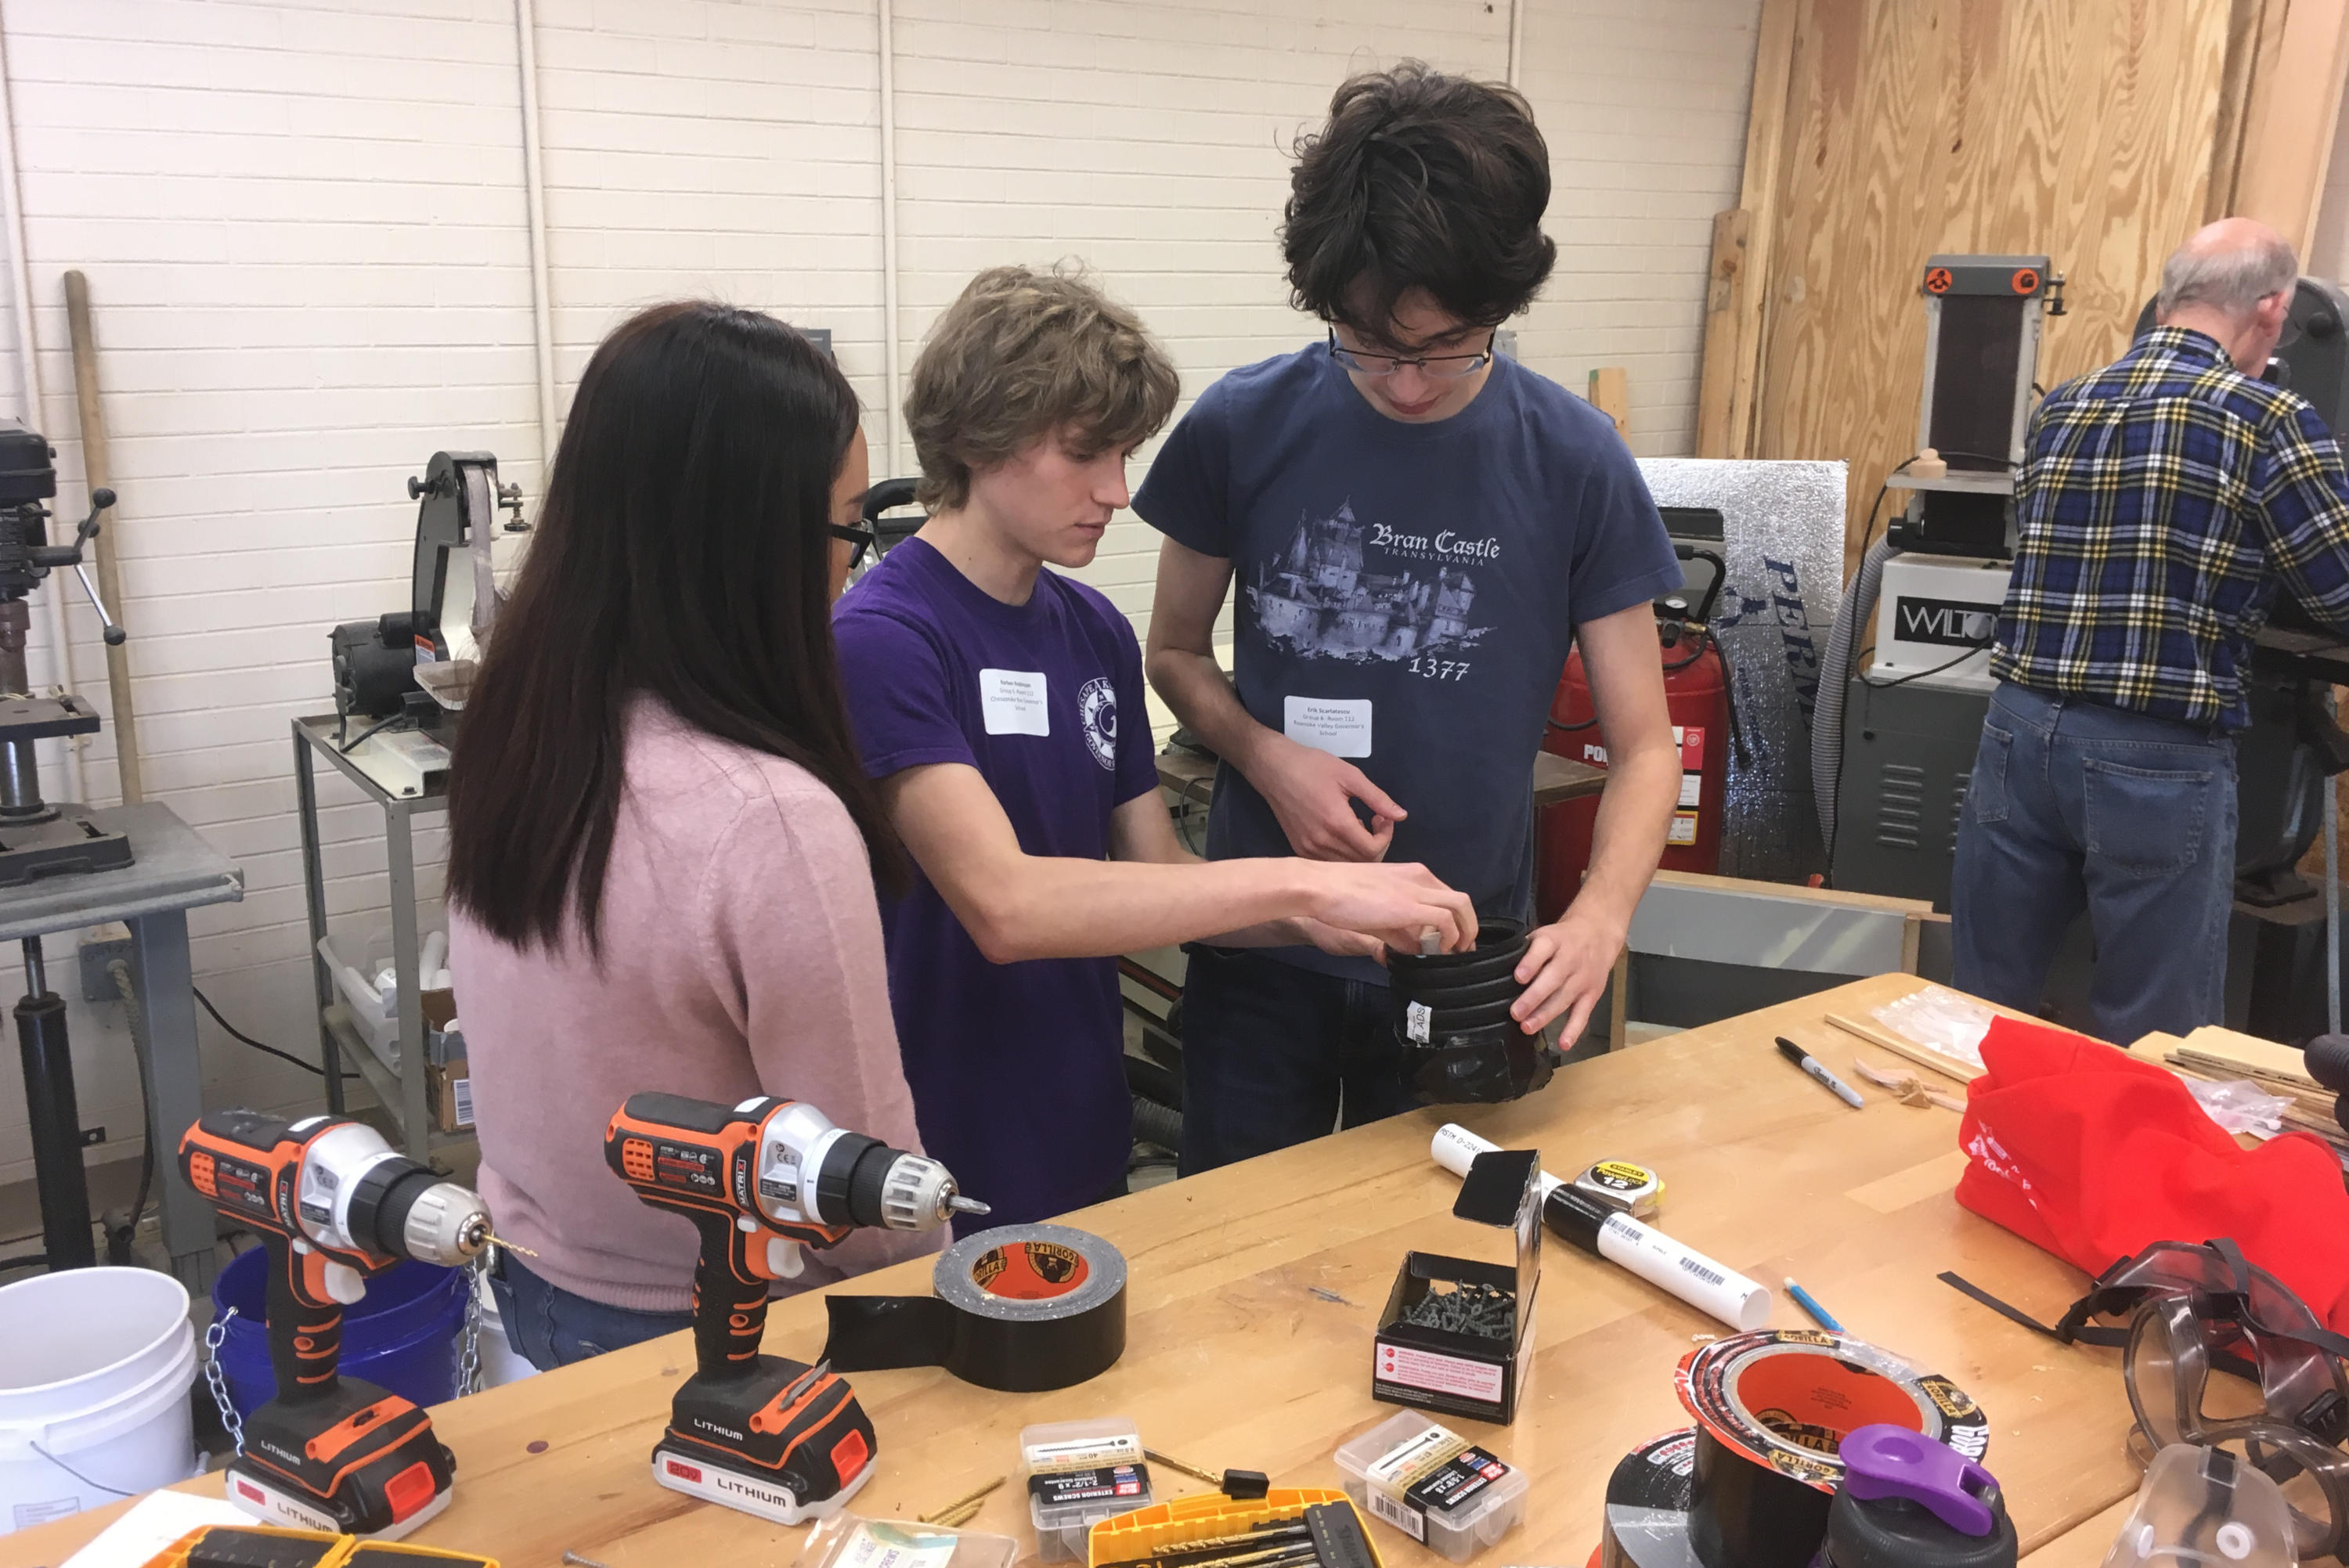 Students building a project with tools